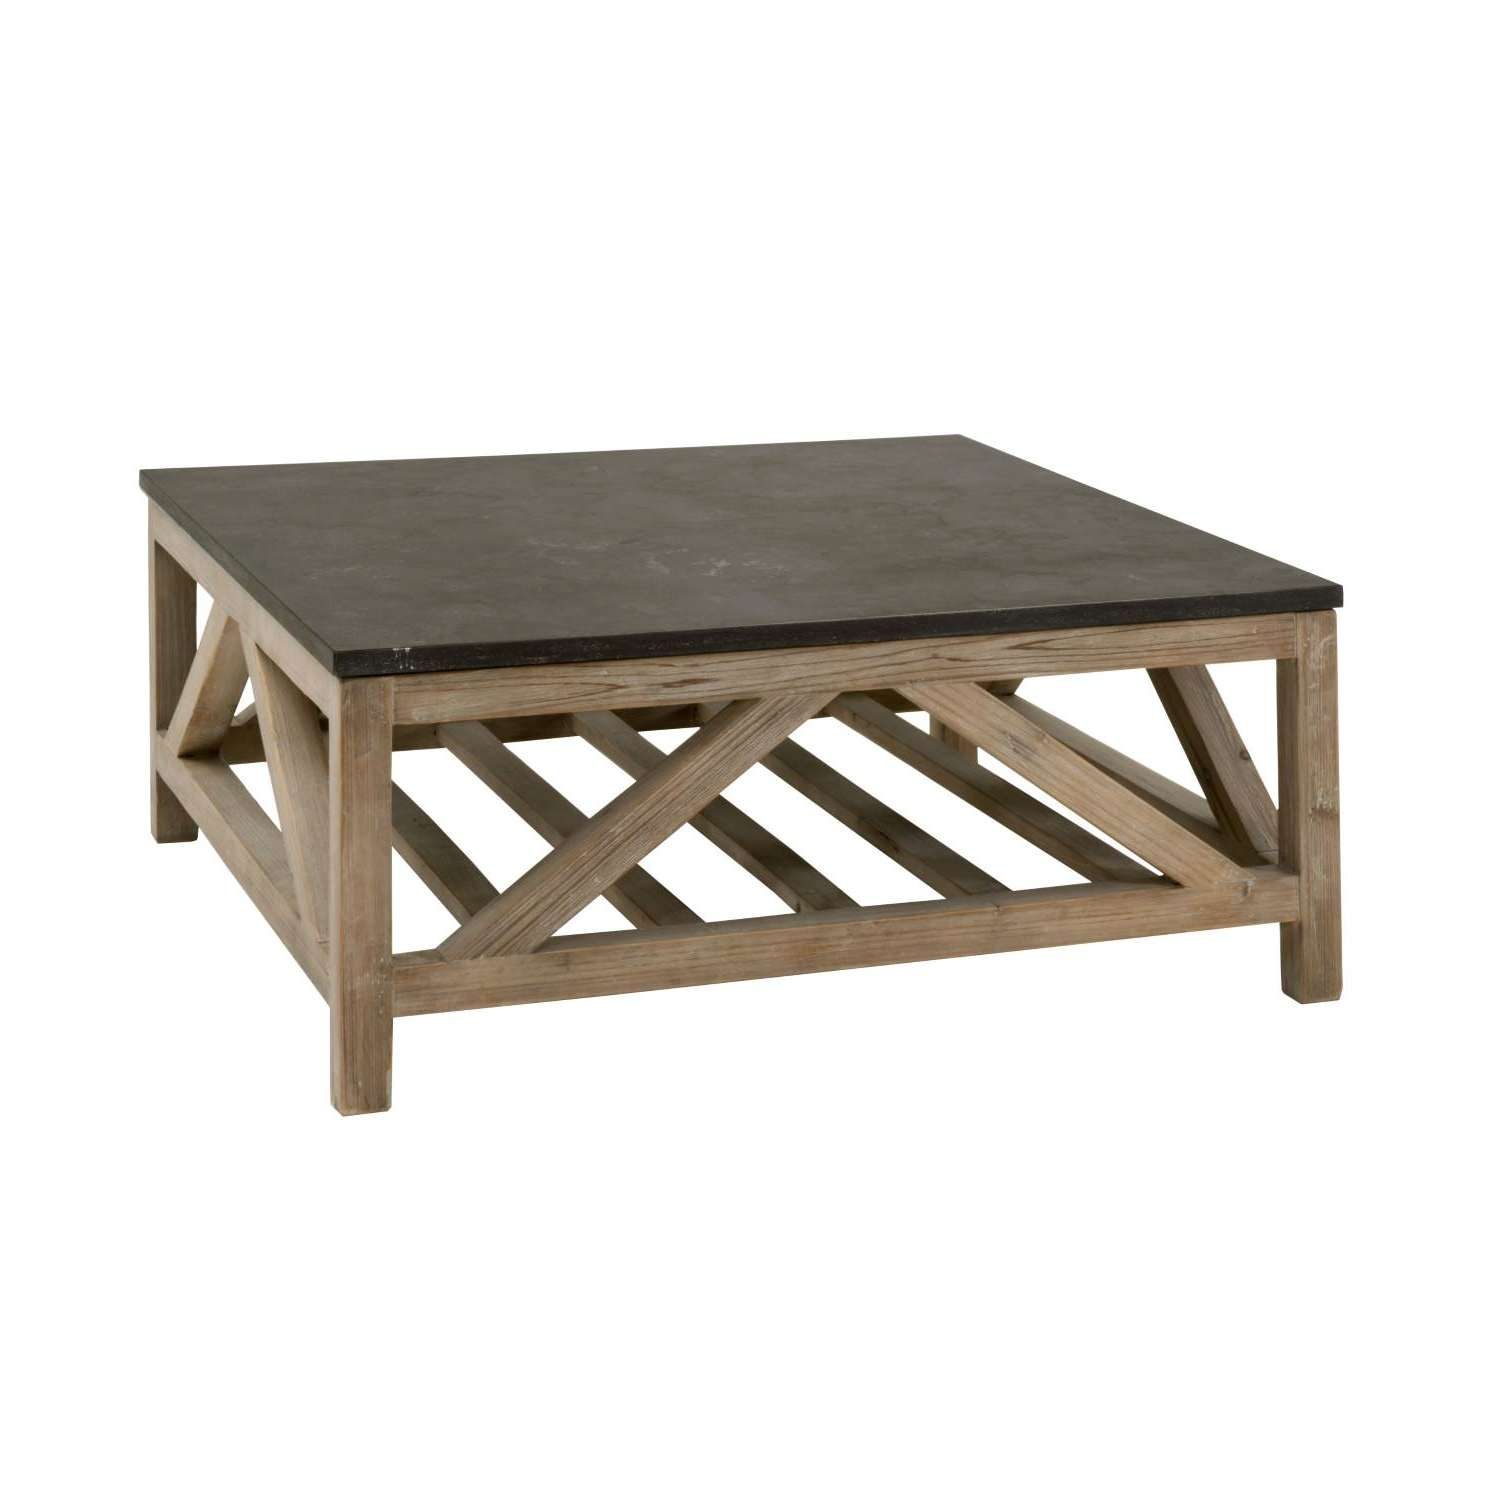 Blue Stone Square Coffee Table With Regard To Favorite Square Stone Coffee Tables (View 2 of 20)